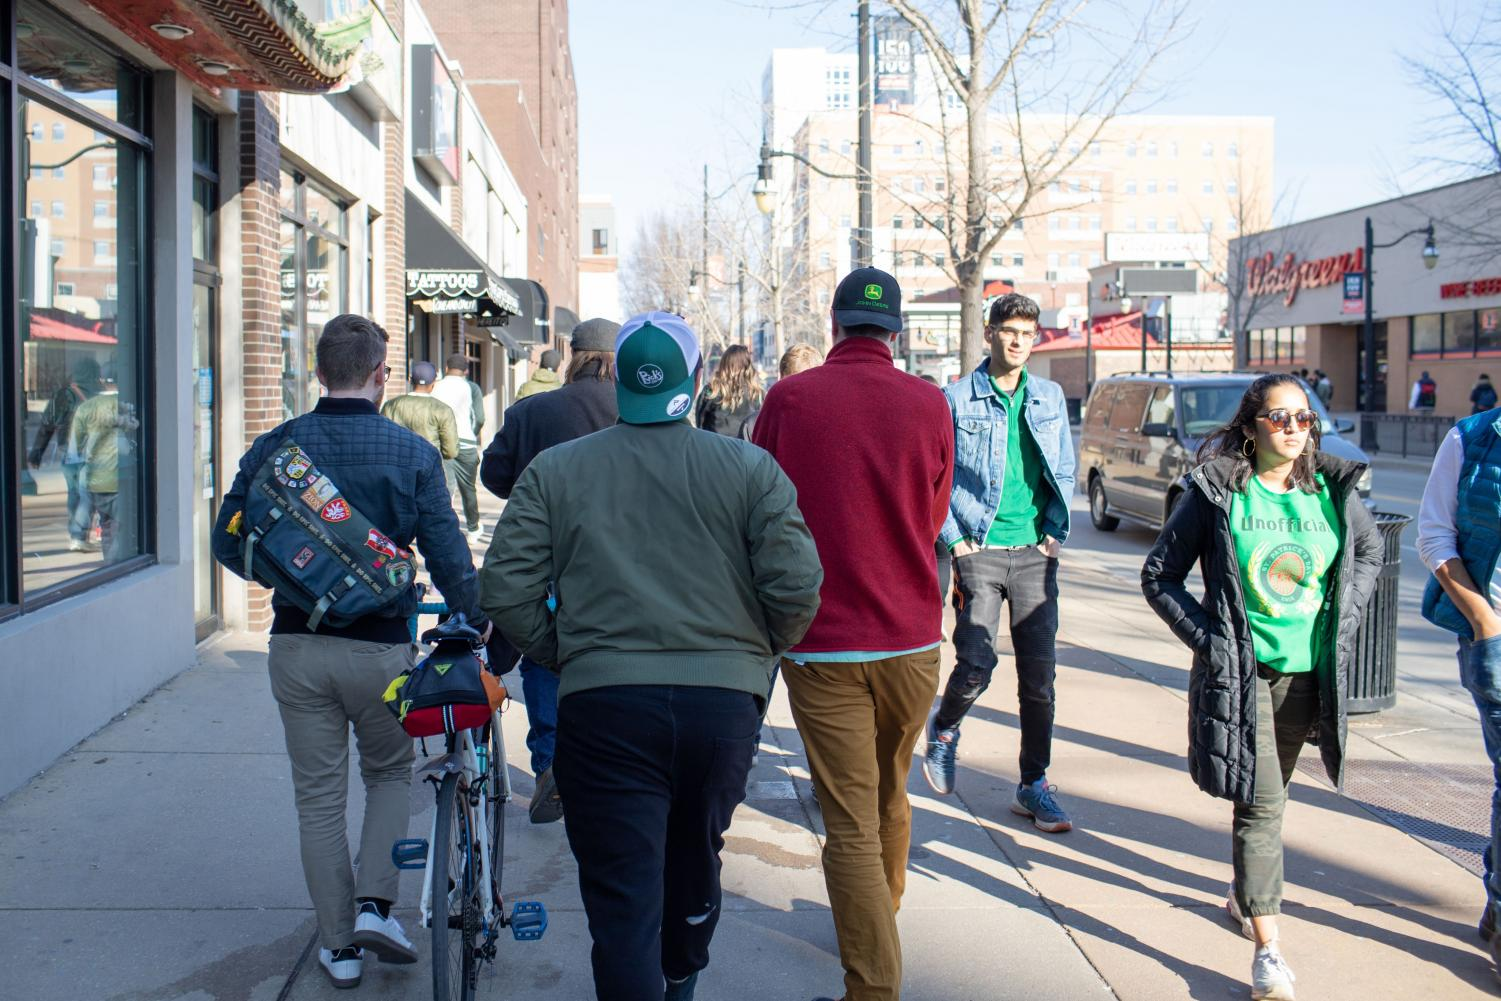 Celebrators+walk+along+Green+Street+during+Unofficial+on+Friday.